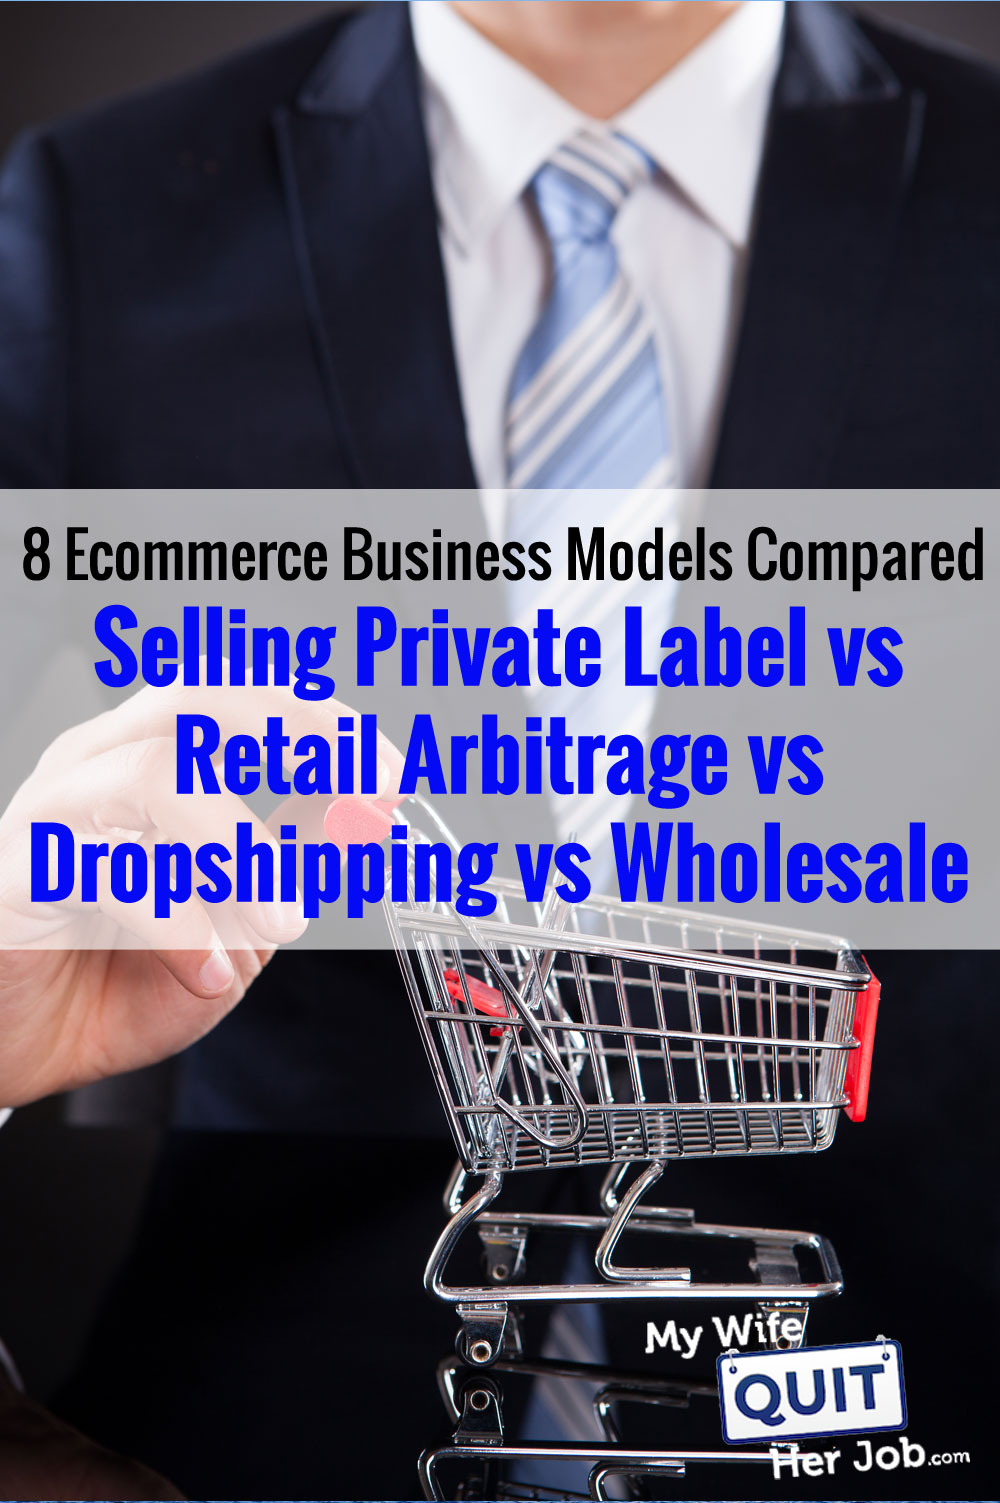 Private Label vs Retail Arbitrage vs Dropshipping vs